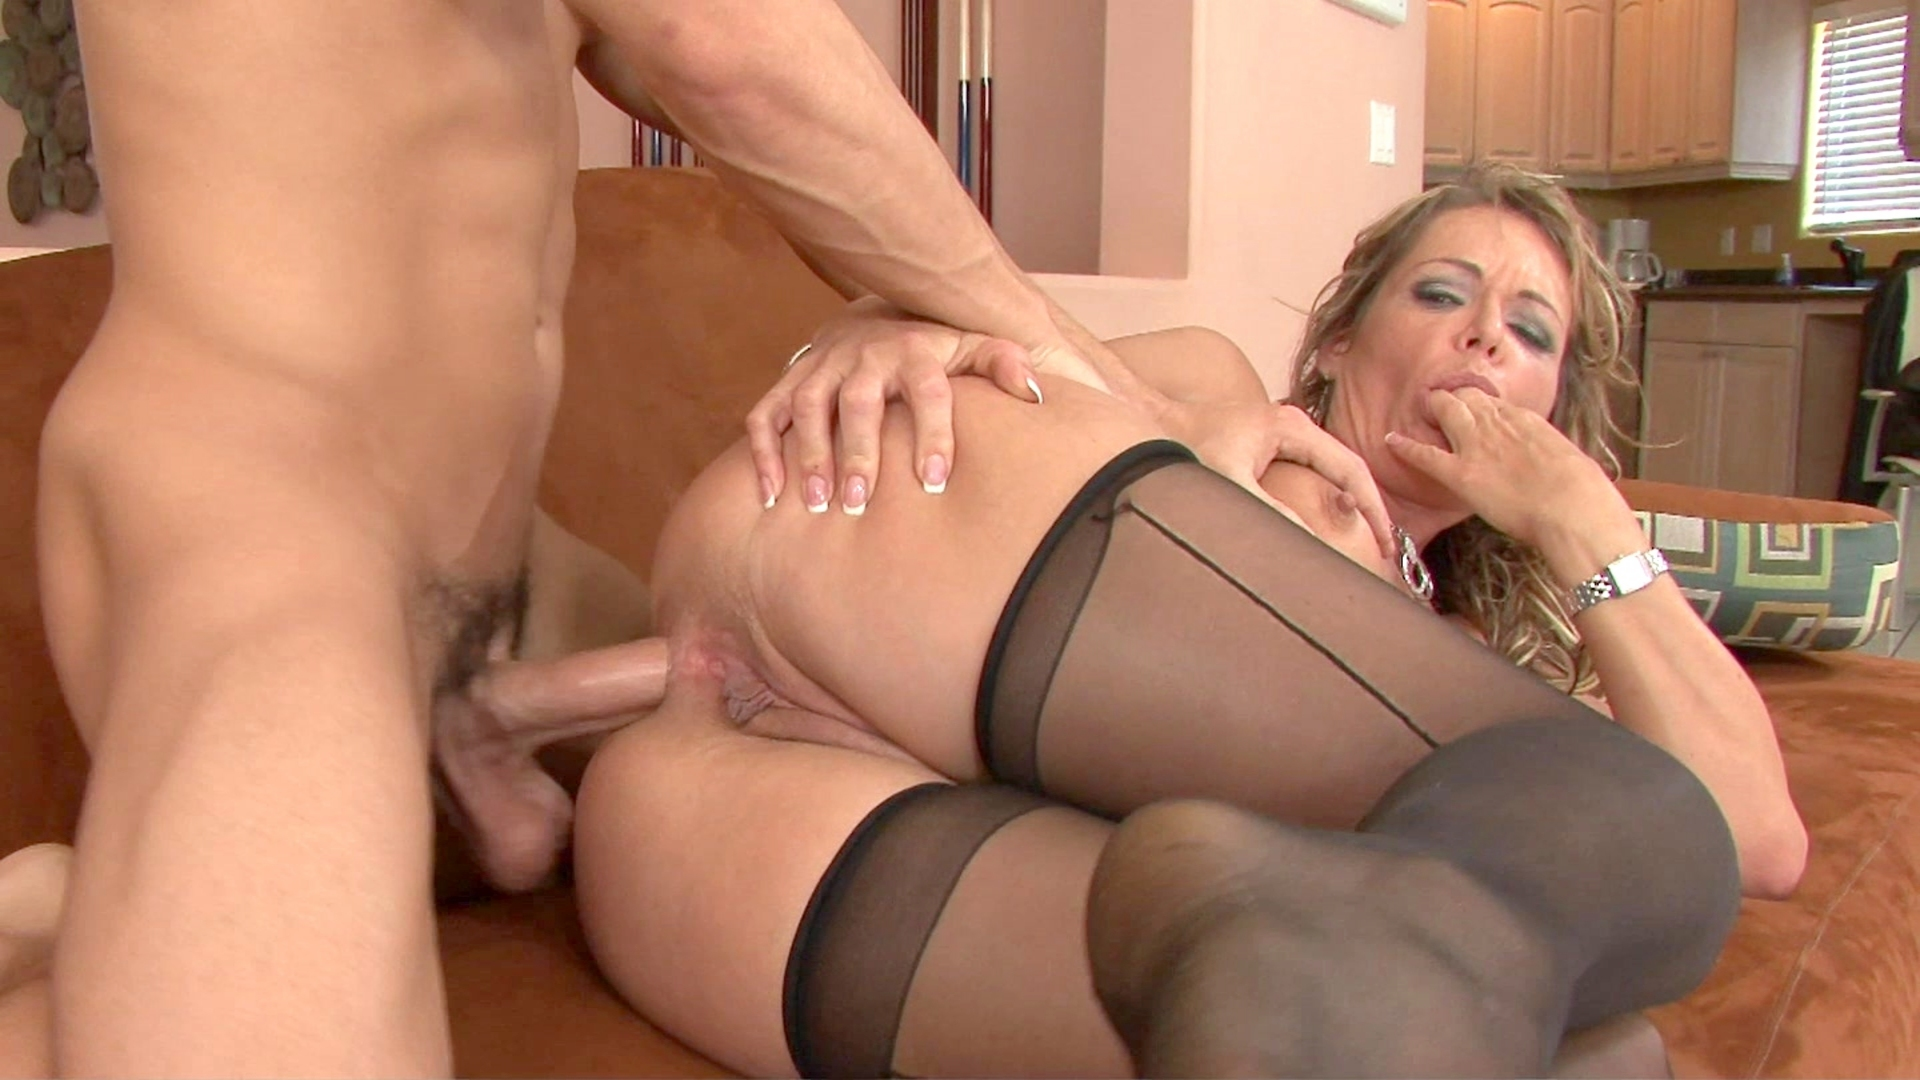 Free milf anal fucking videos, no free mature video site